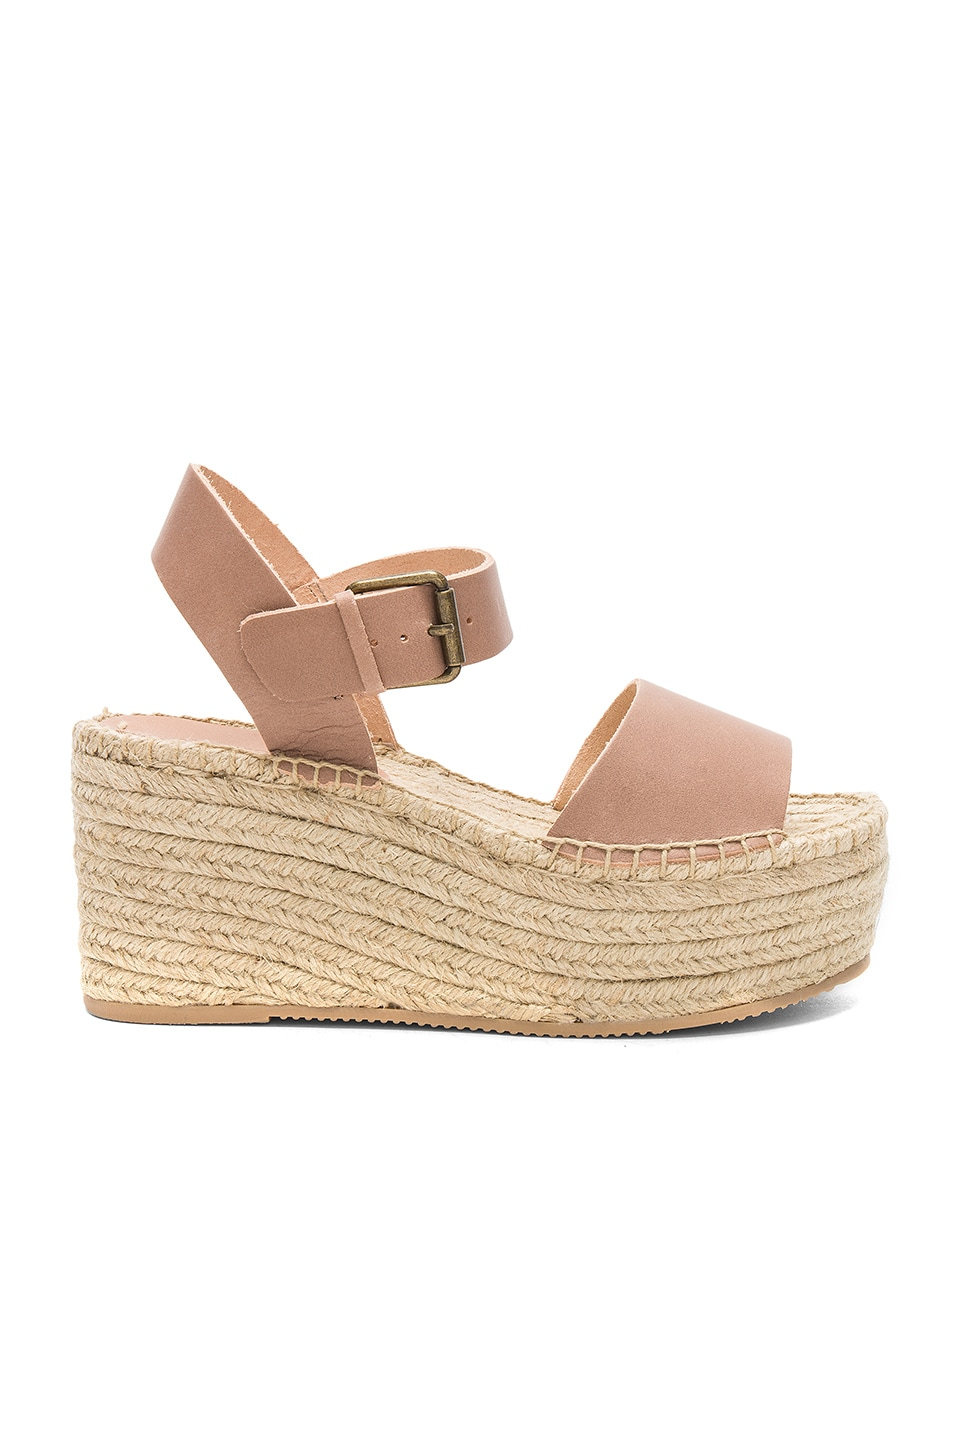 Soludos Minorca High Platform Sandal in Dove Gray